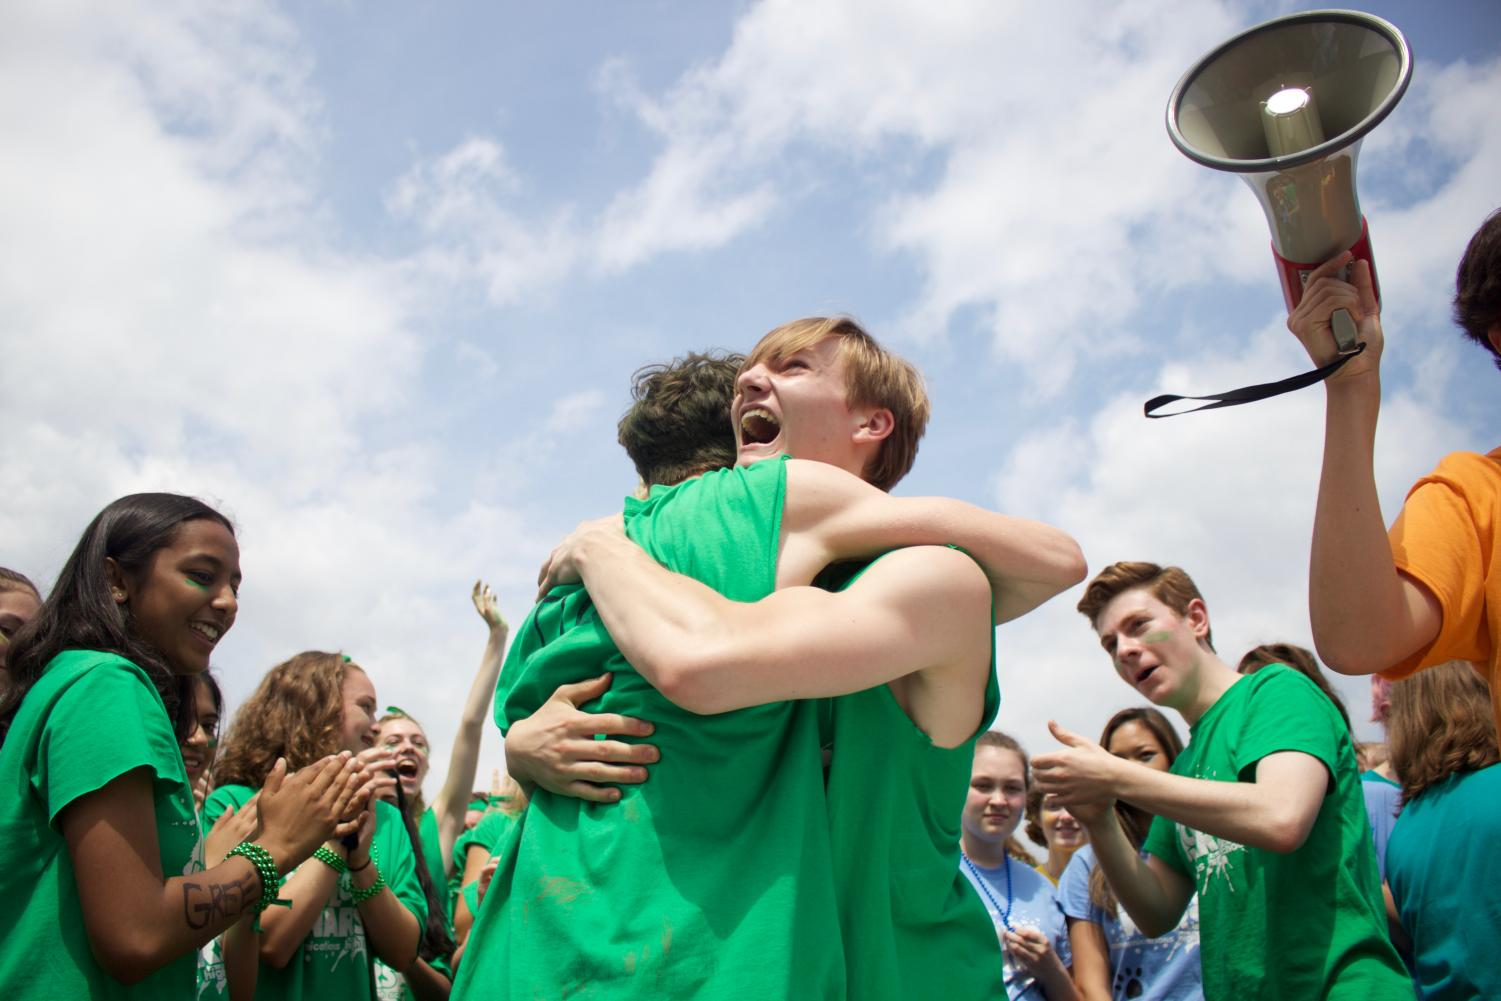 Green+Team+captain+and+senior+Jonathan+Slovak+of+Spring+Lake+Heights+hugs+his+fellow+Green+Team+captain+and+senior+Matt+Avena+of+Middletown+after+Avena+wins+the+pie-eating+competition+against+the+Red+Team.+